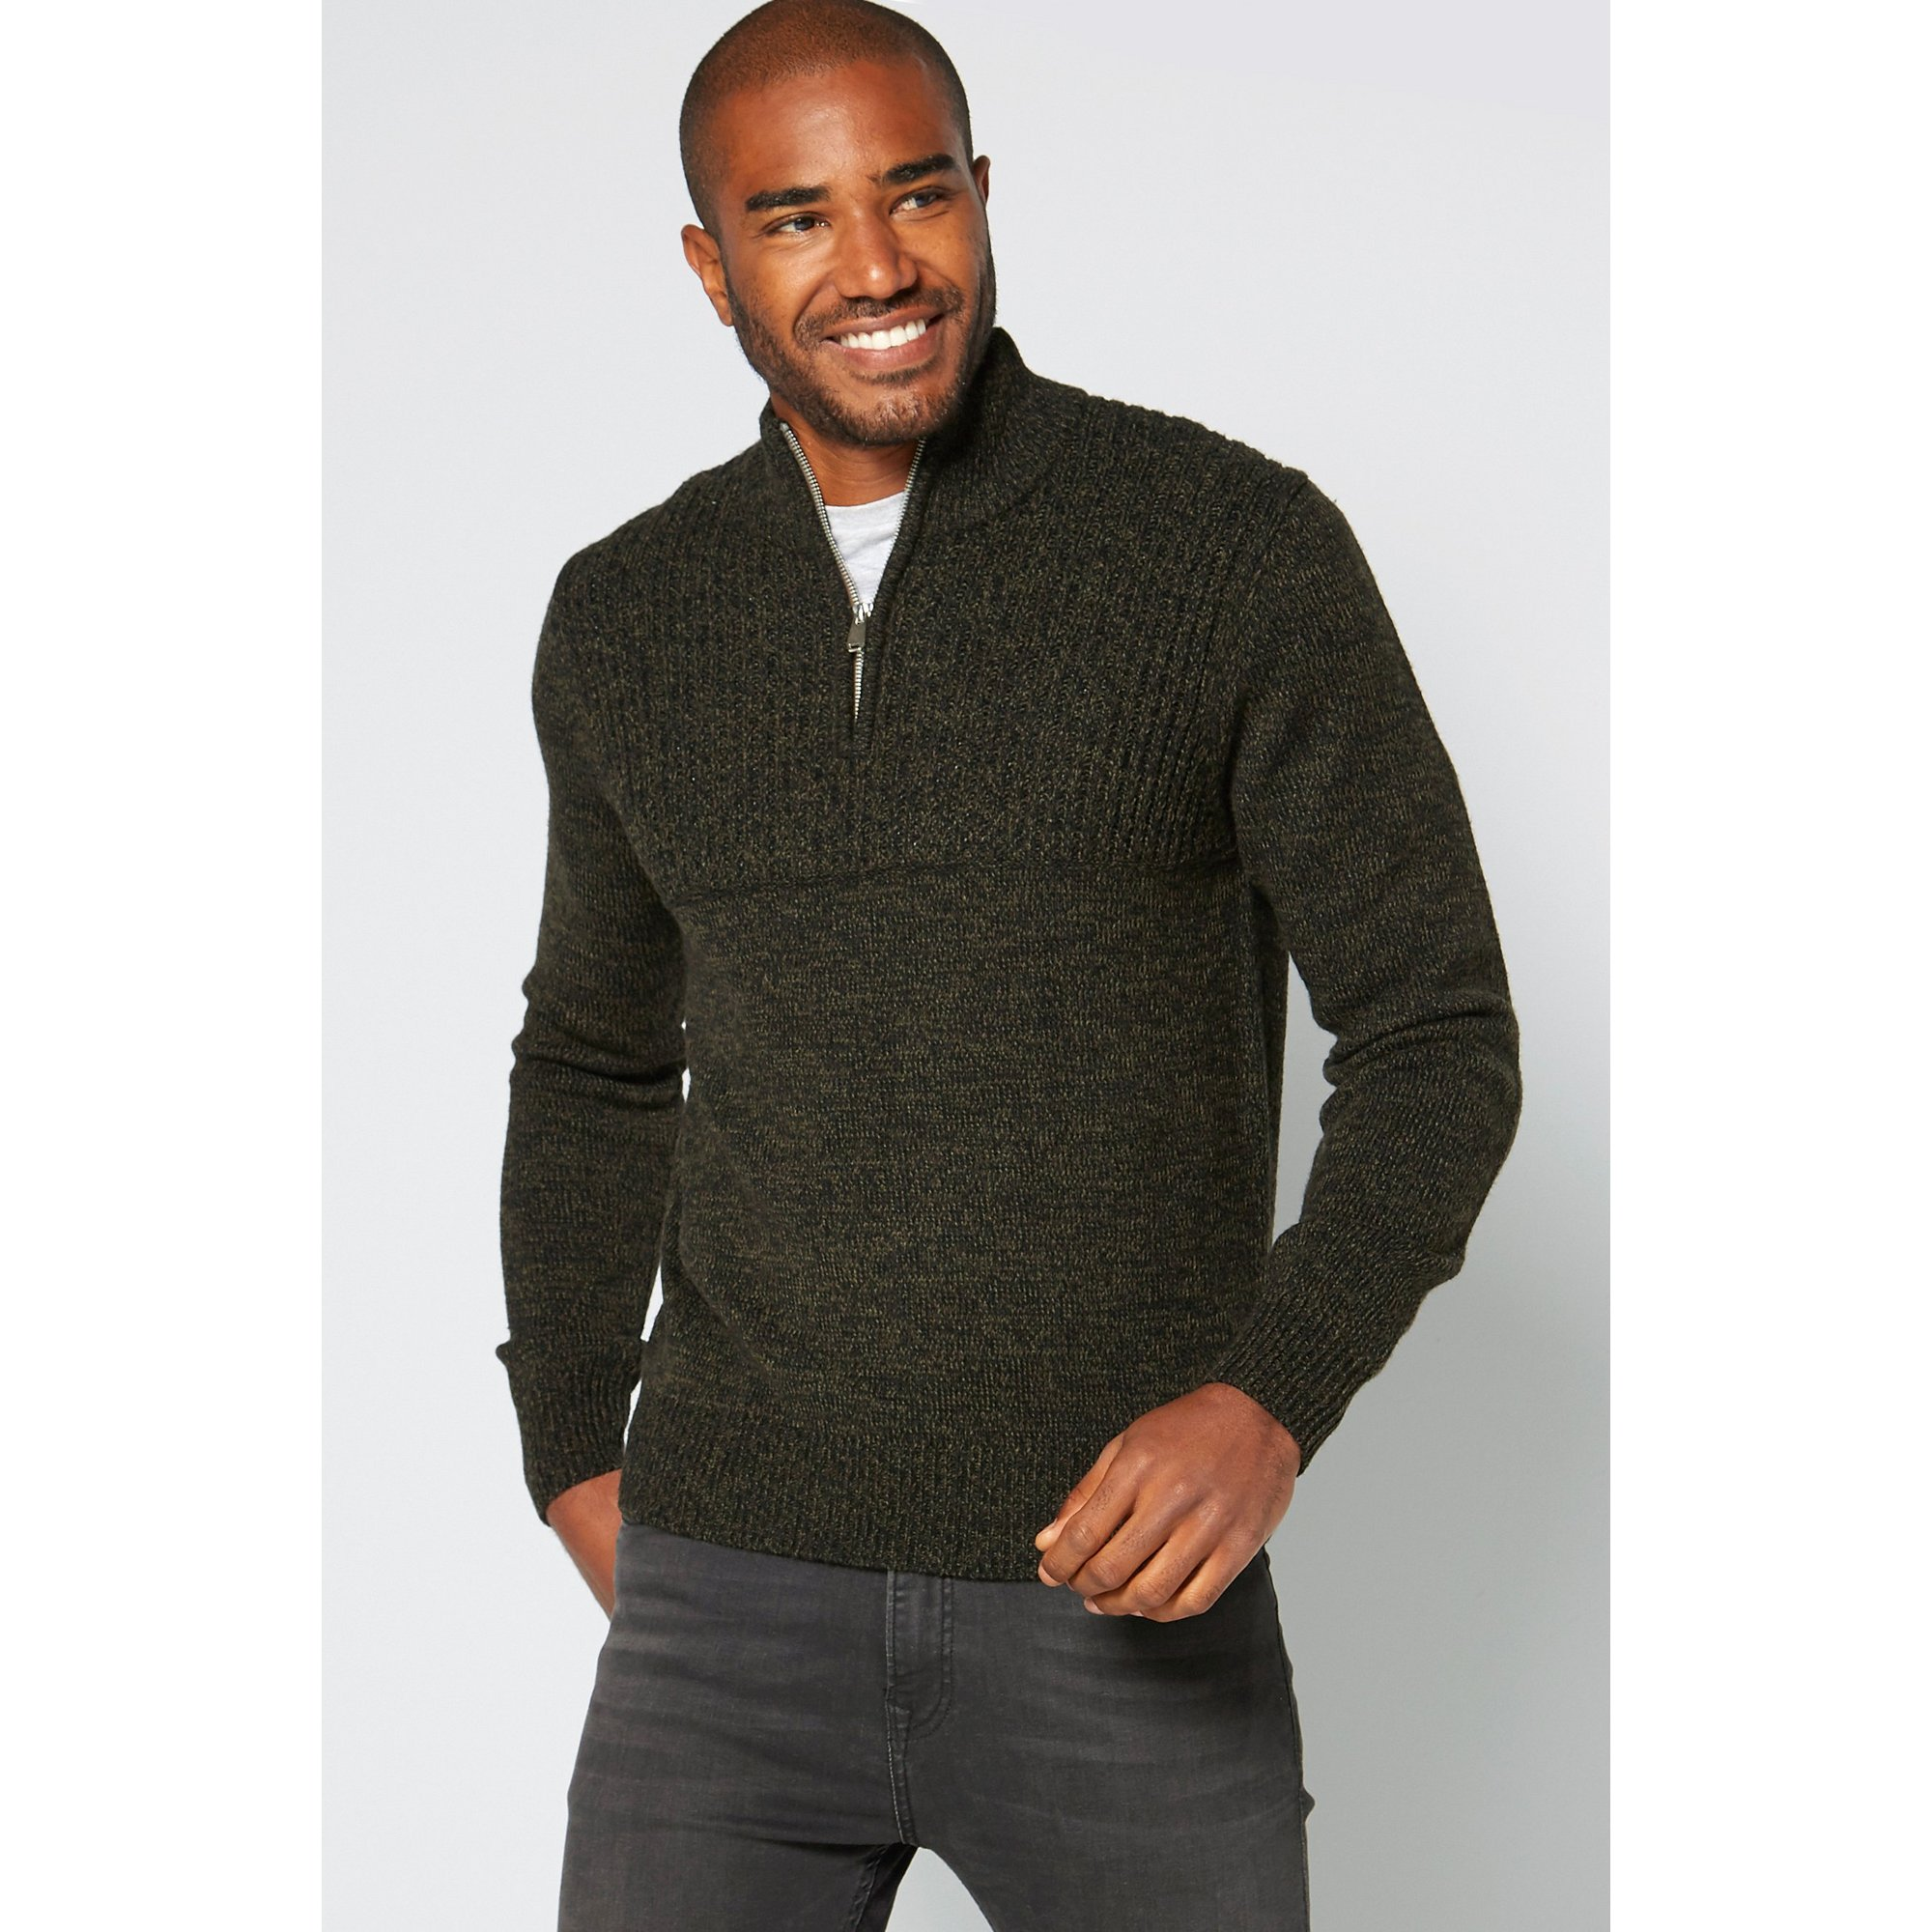 Image of 1/4 Zip Neck Khaki/Black Contrast Knitted Jumper